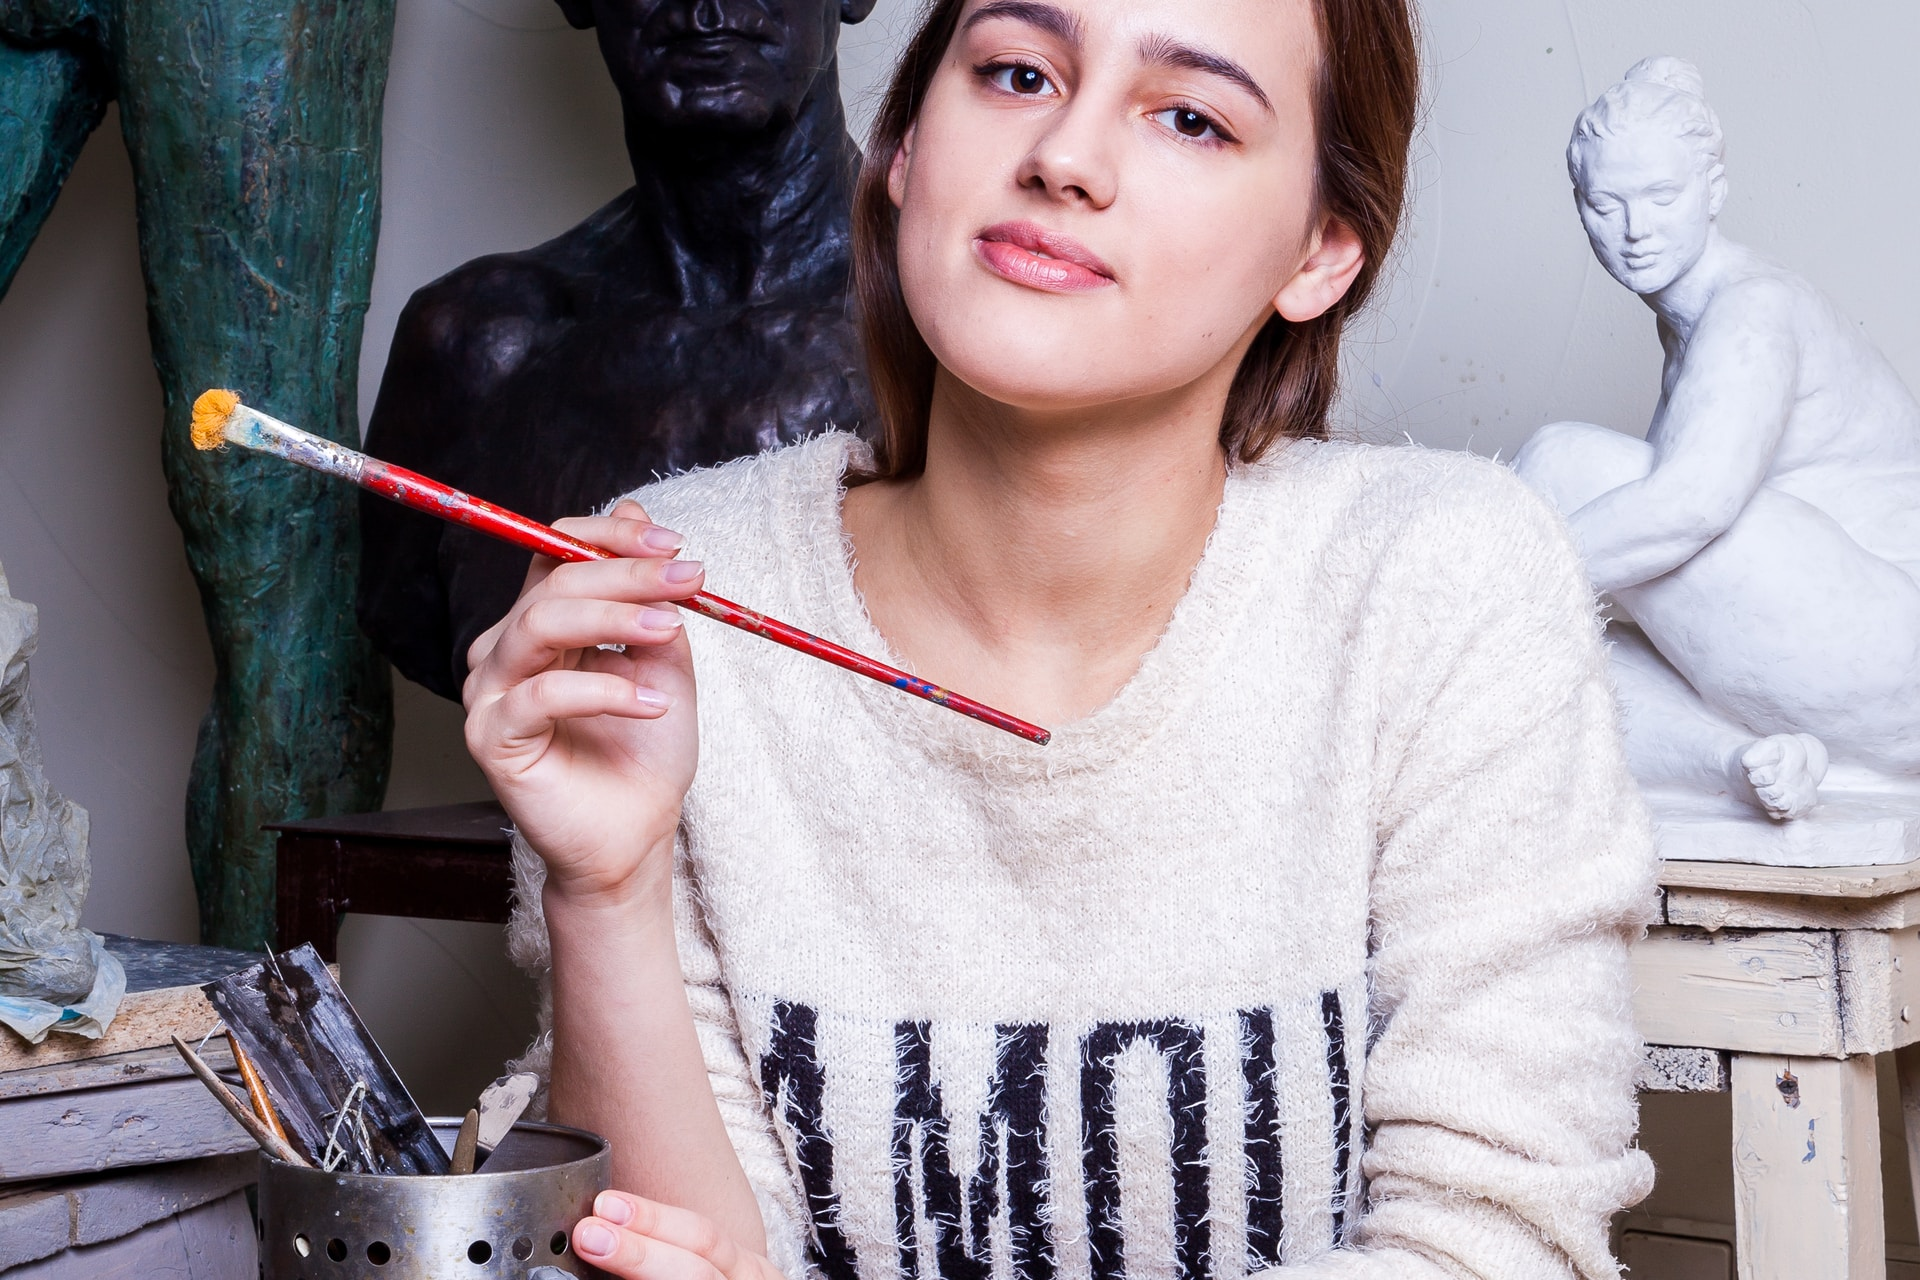 woman leaning on table and holding paint brush